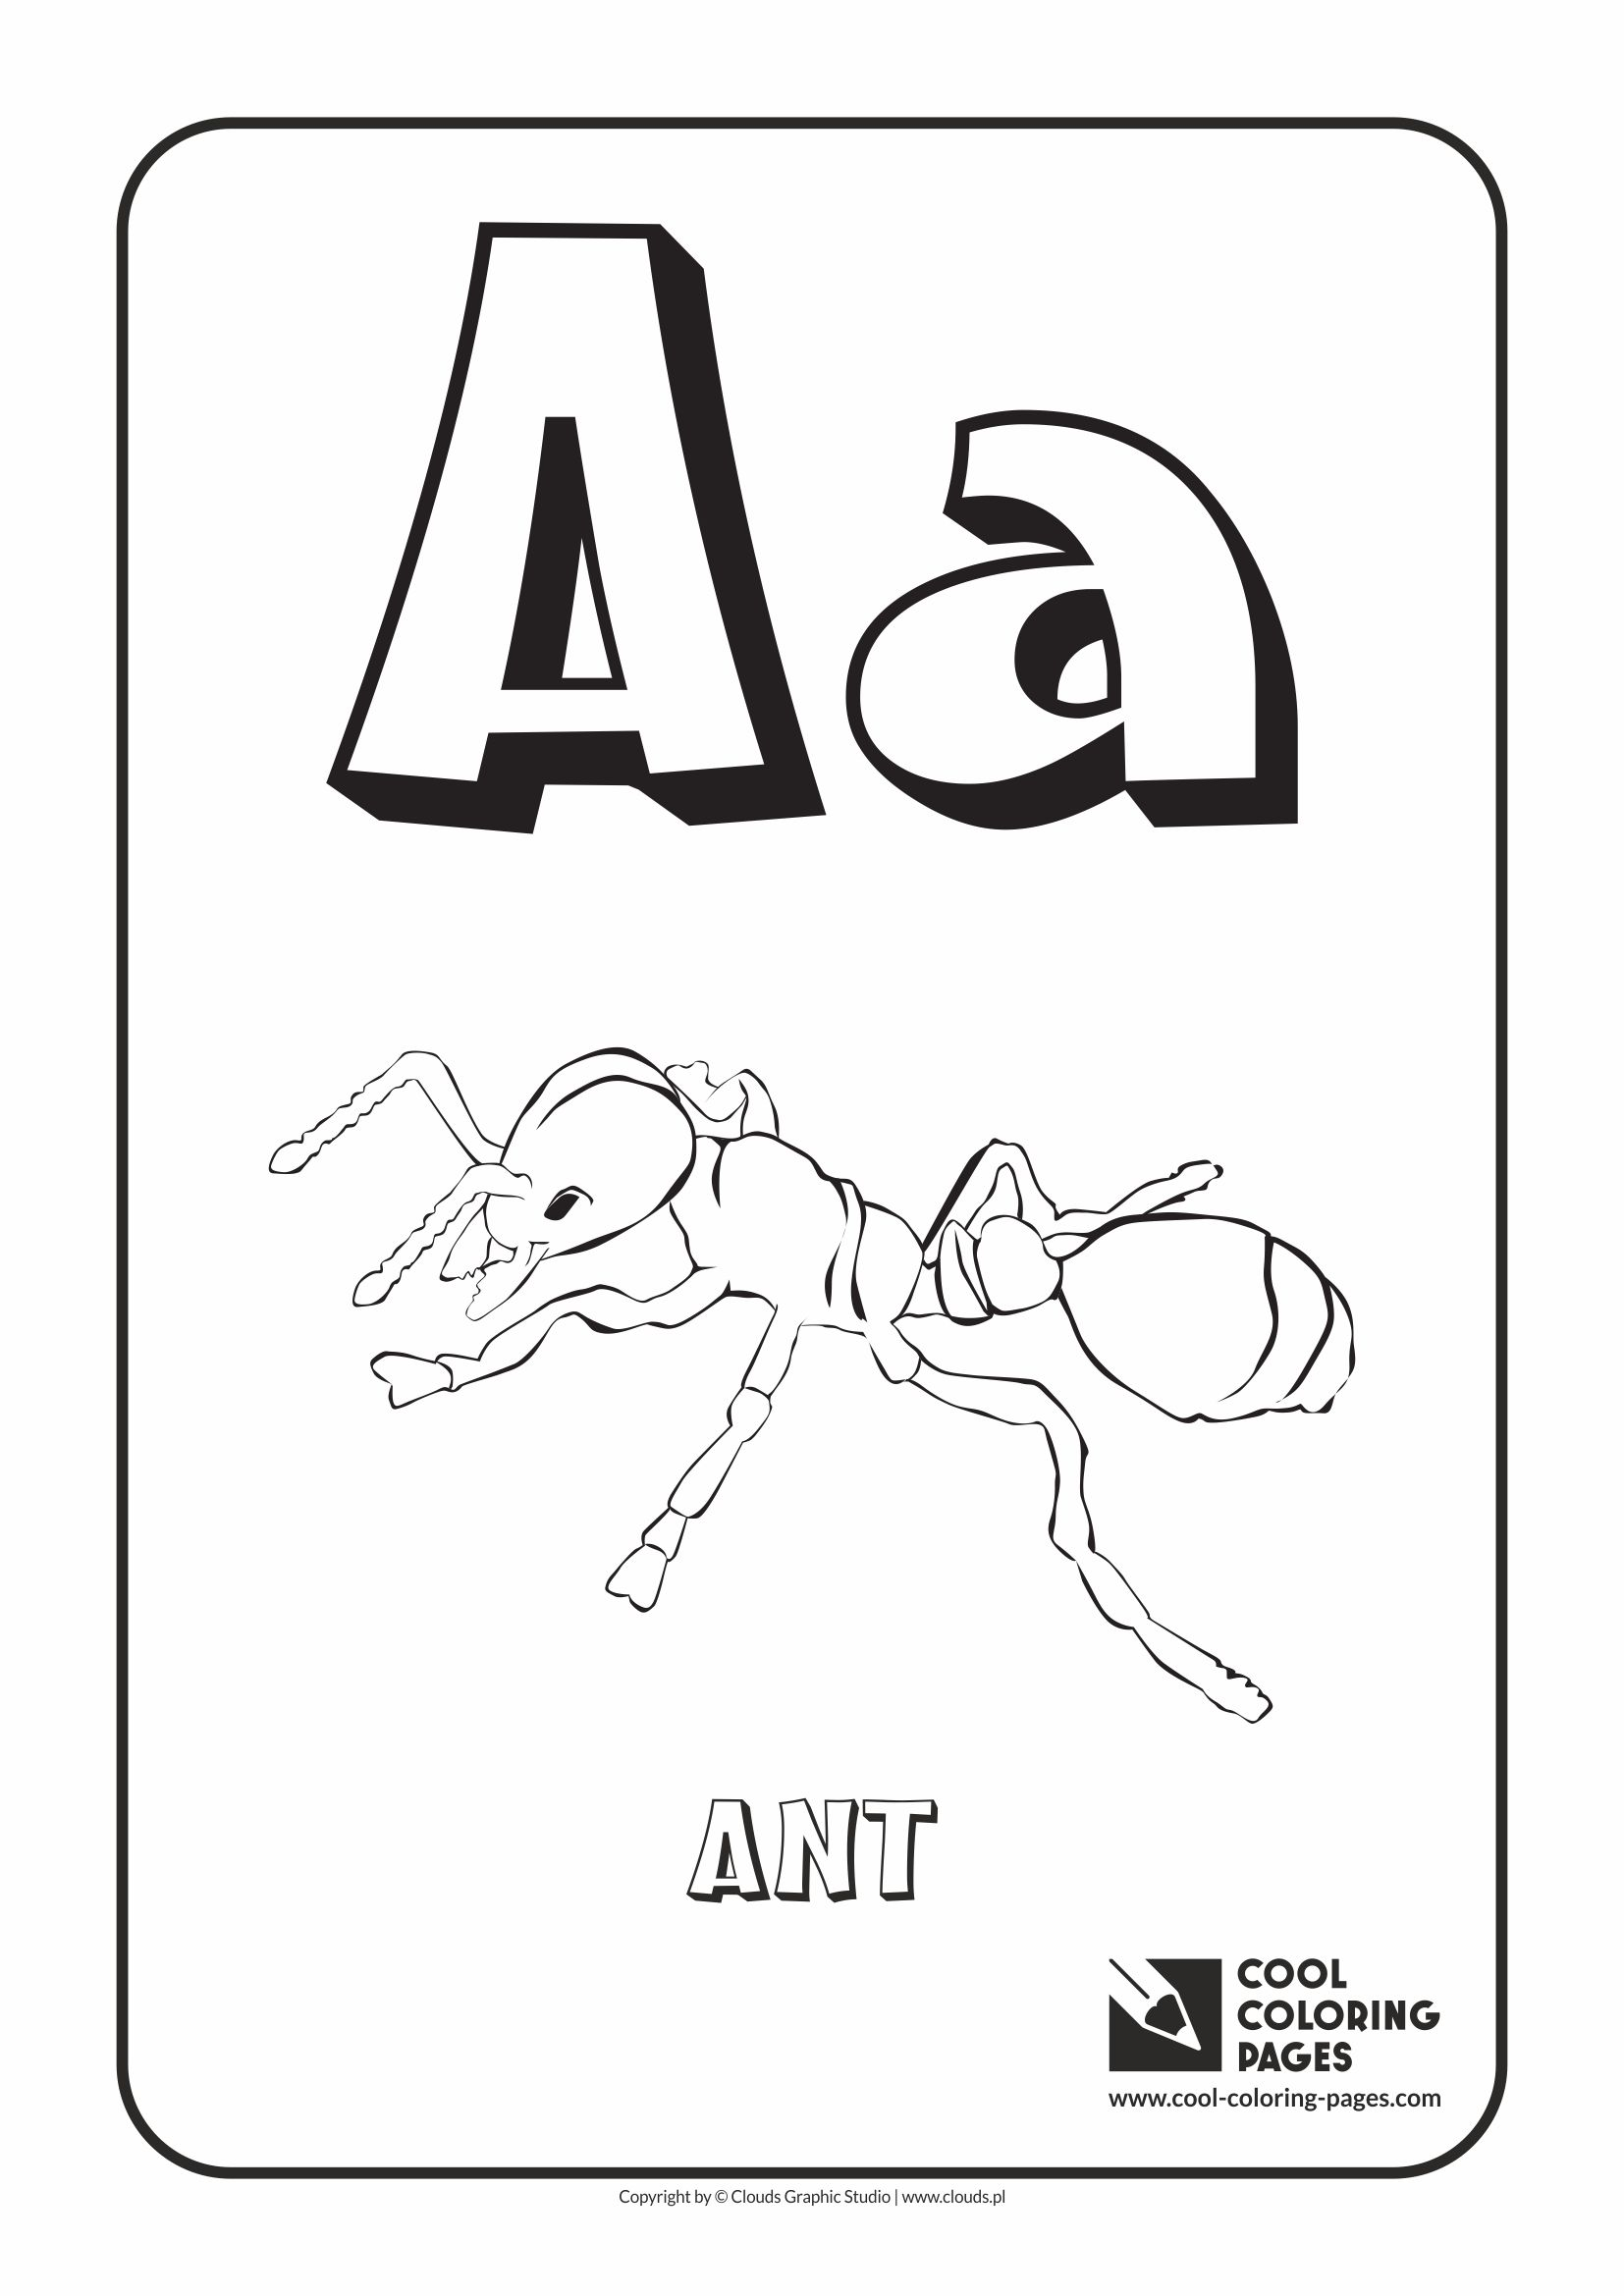 cool coloring pages alphabet letter a coloring page with letter a - A Coloring Pages